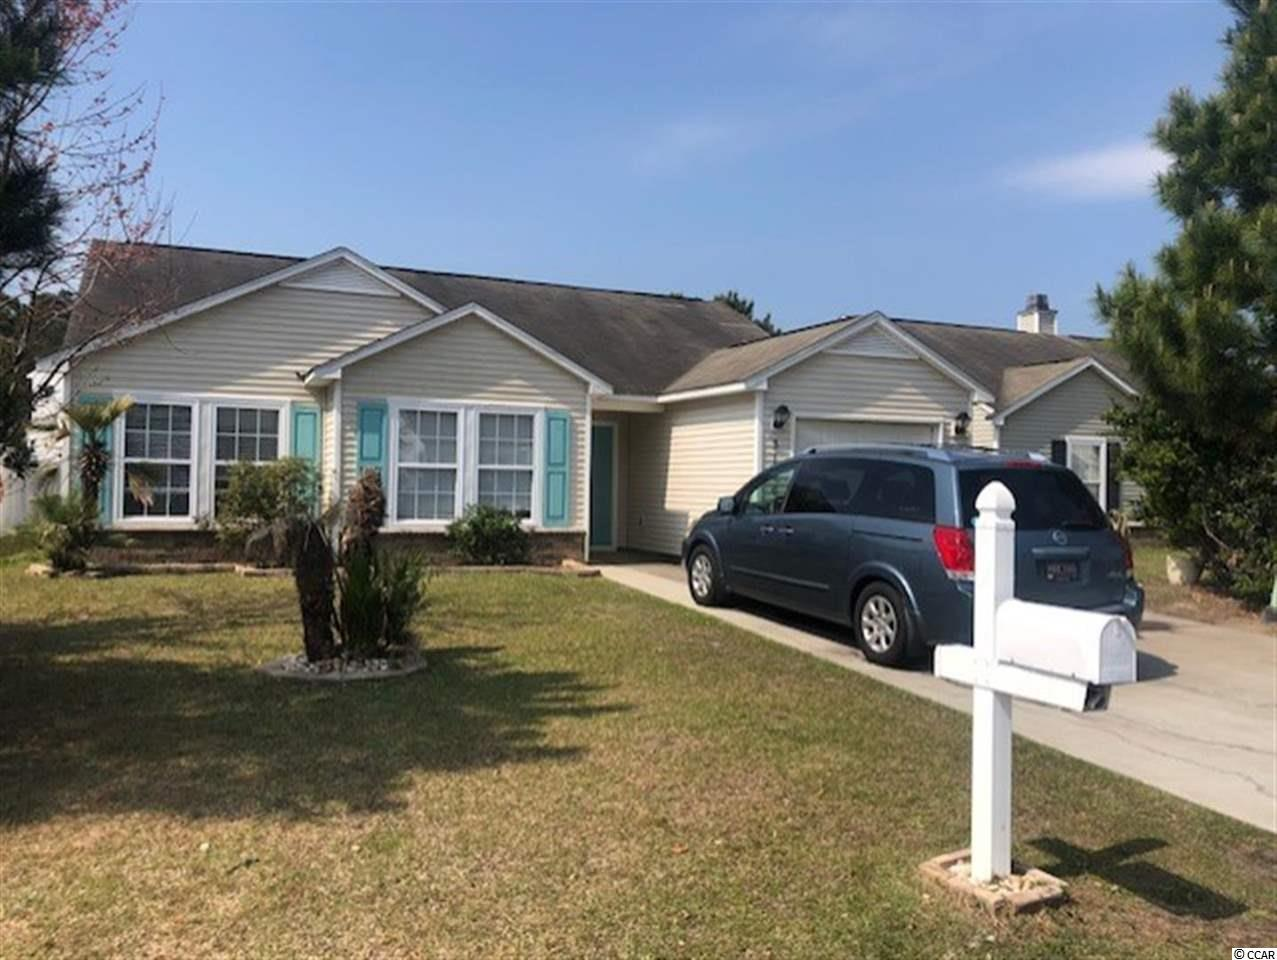 COME SEE THIS ADORABLE THREE BEDROOM TWO BATH HOME IN POPULAR BELLEGROVE OAKS! THIS HOME HAS BEEN FRESHLY PAINTED AND CLEANED AND IS MOVE IN READY! LIGHT & BRIGHT WITH A HUGE EAT IN KITCHEN, BEAUTIFUL FLOORING IN THE FOYER, LIVING AREA AND HALLWAY, PLUS A LARGE WALK IN CLOSET IN THE MASTER BEDROOM WITH ADJOINING BATHROOM!!! ENJOY YOUR SUMMER NIGHTS GRILLING OUT OR RELAXING ON YOUR OVER SIZED BRICK PATIO OVERLOOKING YOUR PRIVATE FENCED IN YARD WITH IRRIGATION SYSTEM!!! HVAC ONLY 3 YEARS OLD! BELLEGROVE OAKS IS LOCATED IN THE SOUGHT AFTER CAROLINA FOREST SCHOOL DISTRICT WITH THE ELEMENTARY AND MIDDLE SCHOOL ONLY MINUTES AWAY! CLOSE TO RESTAURANTS, GROCERY STORES AND ONLY A 10 MINUTE RIDE TO THE BEACH AND ALL THAT THE GRAND STRAND HAS TO OFFER! THIS ONE WILL NOT LAST LONG, CALL US TODAY TO MAKE THIS YOUR HOME!